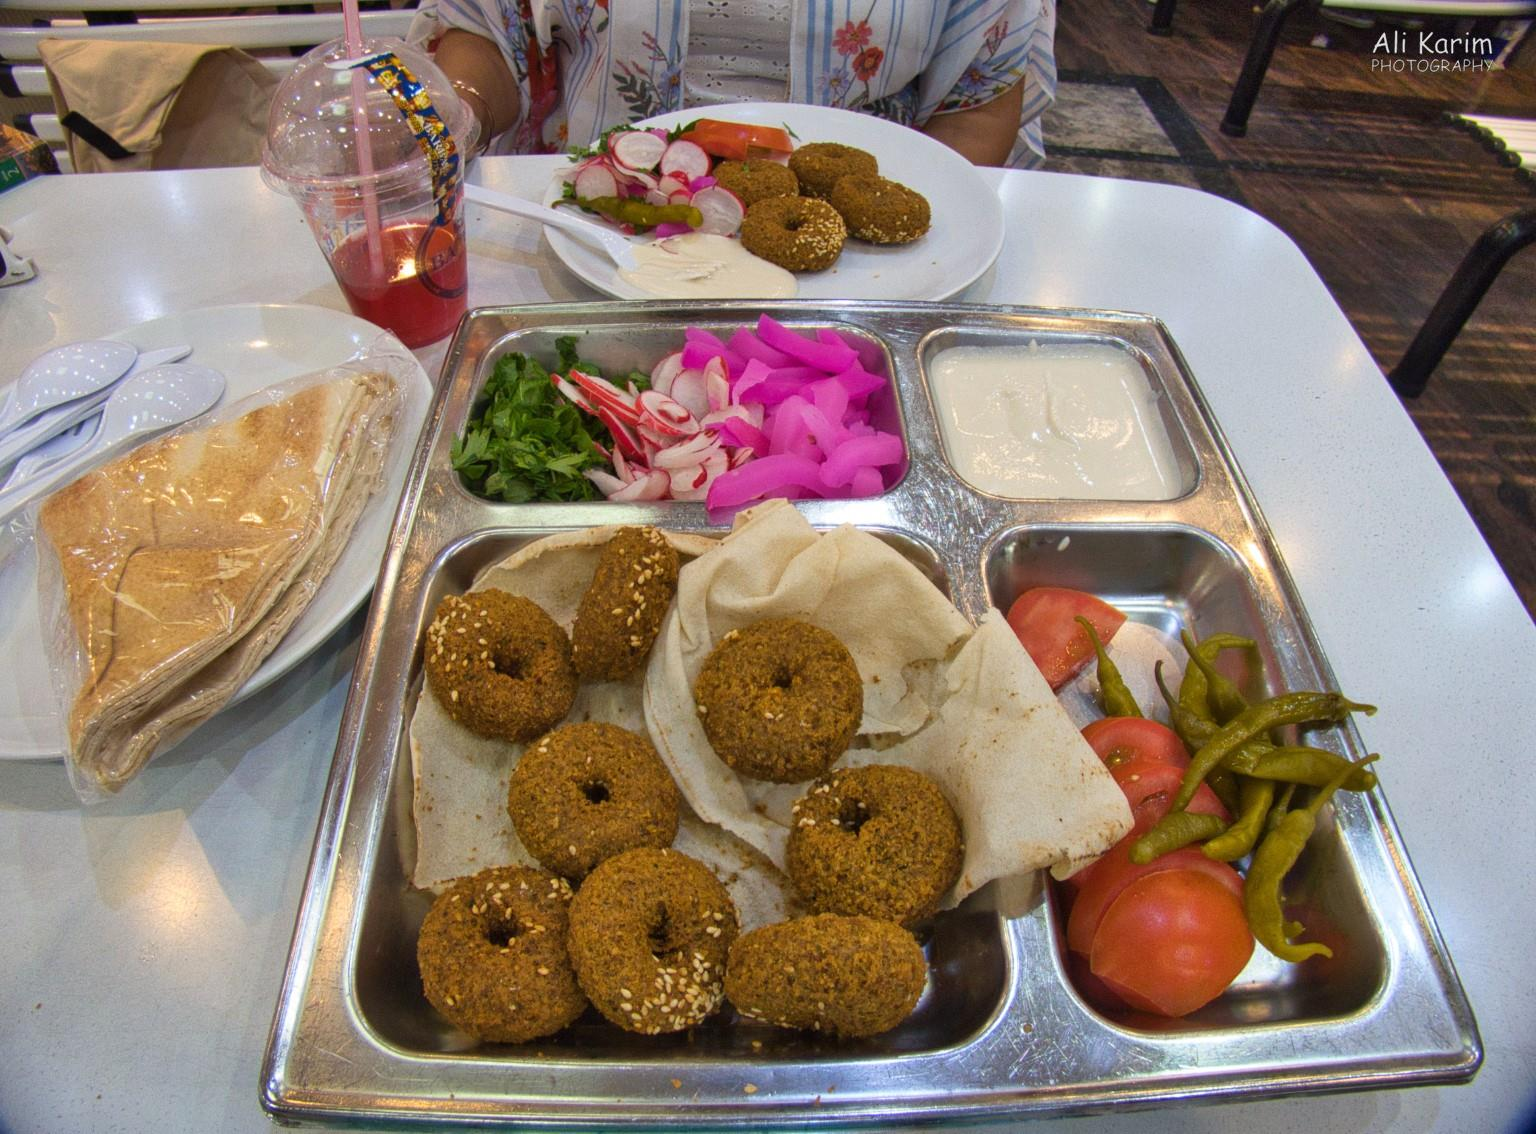 Beirut Falafel meals at Babar restaurant